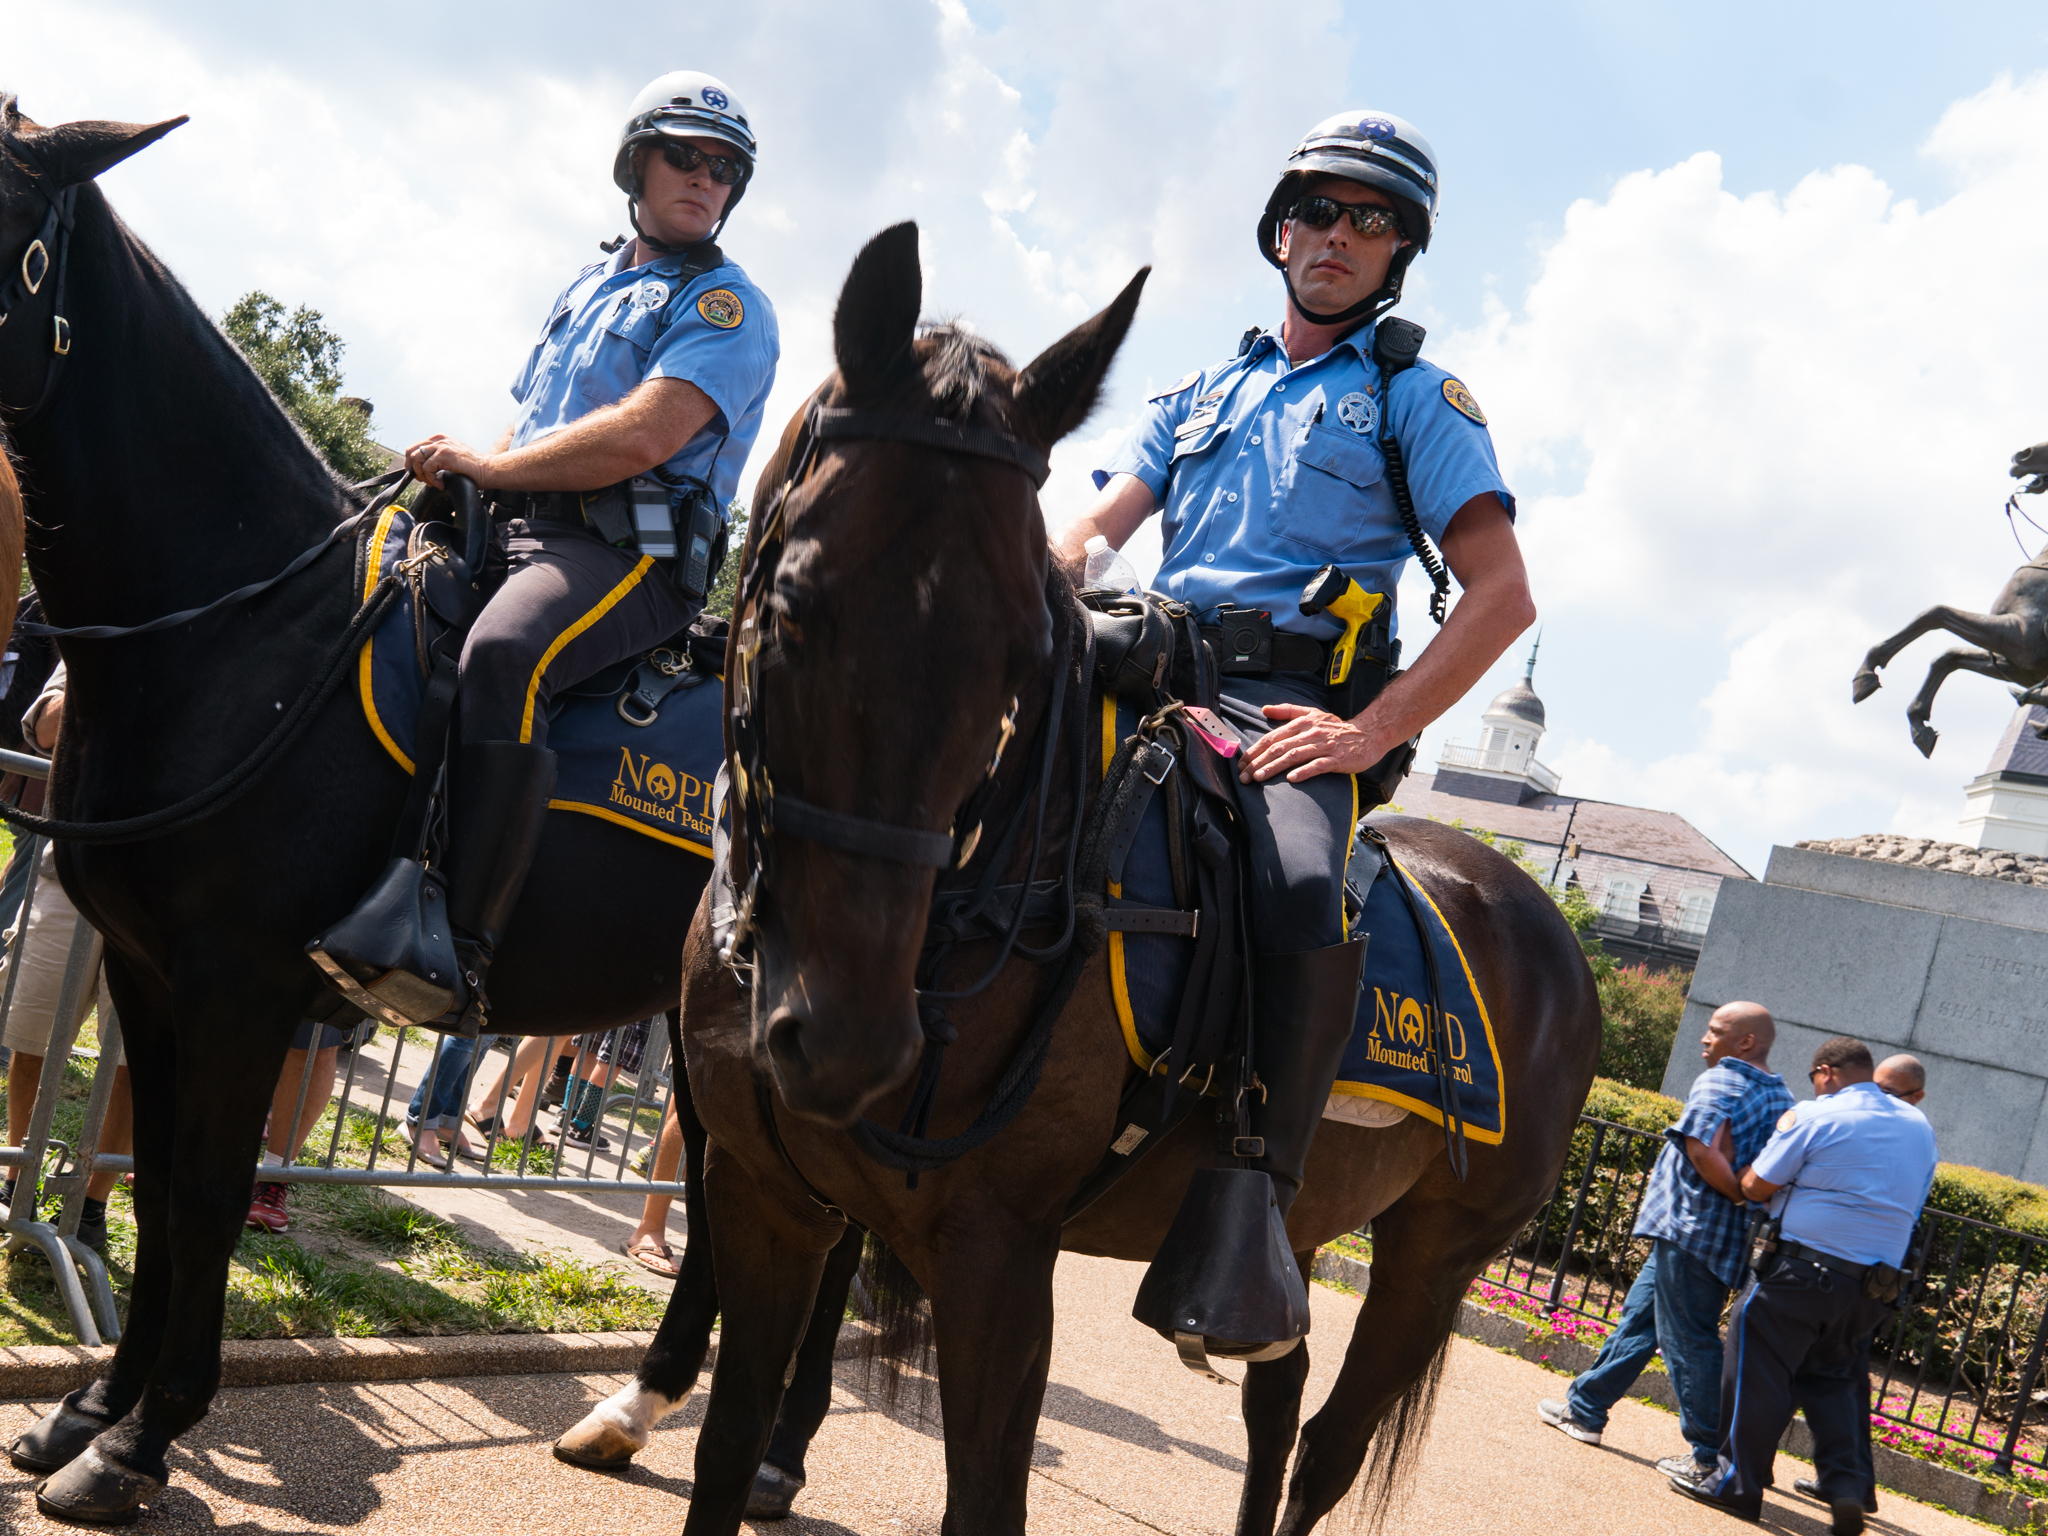 NOPD officers stand guard in front of the statue of Andrew Jackson in Jackson Square.